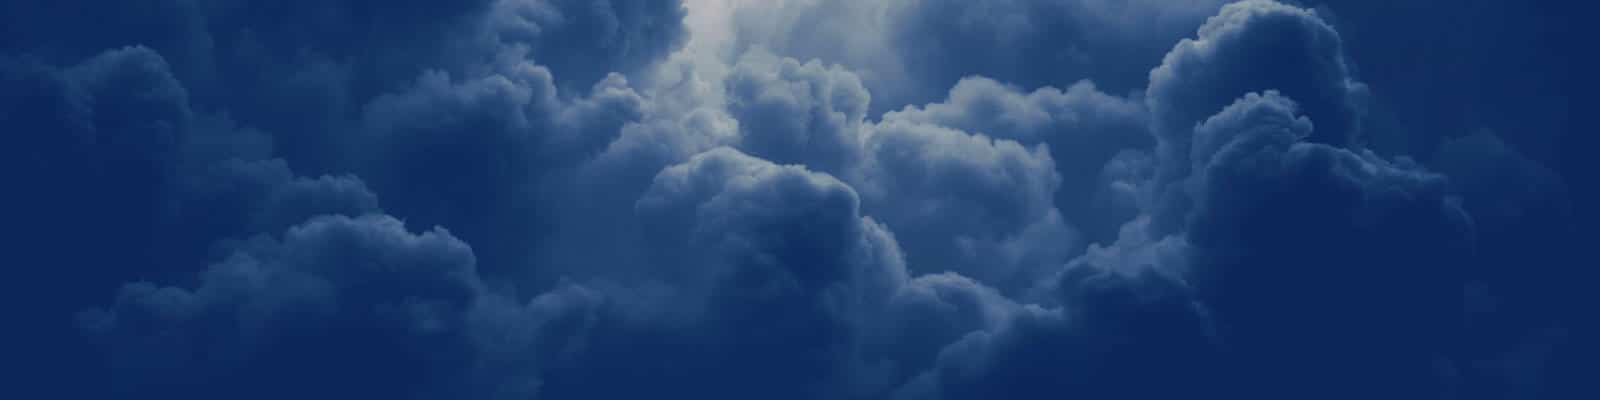 5 Cloud Benefits For A System Administrator Cover Image Of Dark Clouds